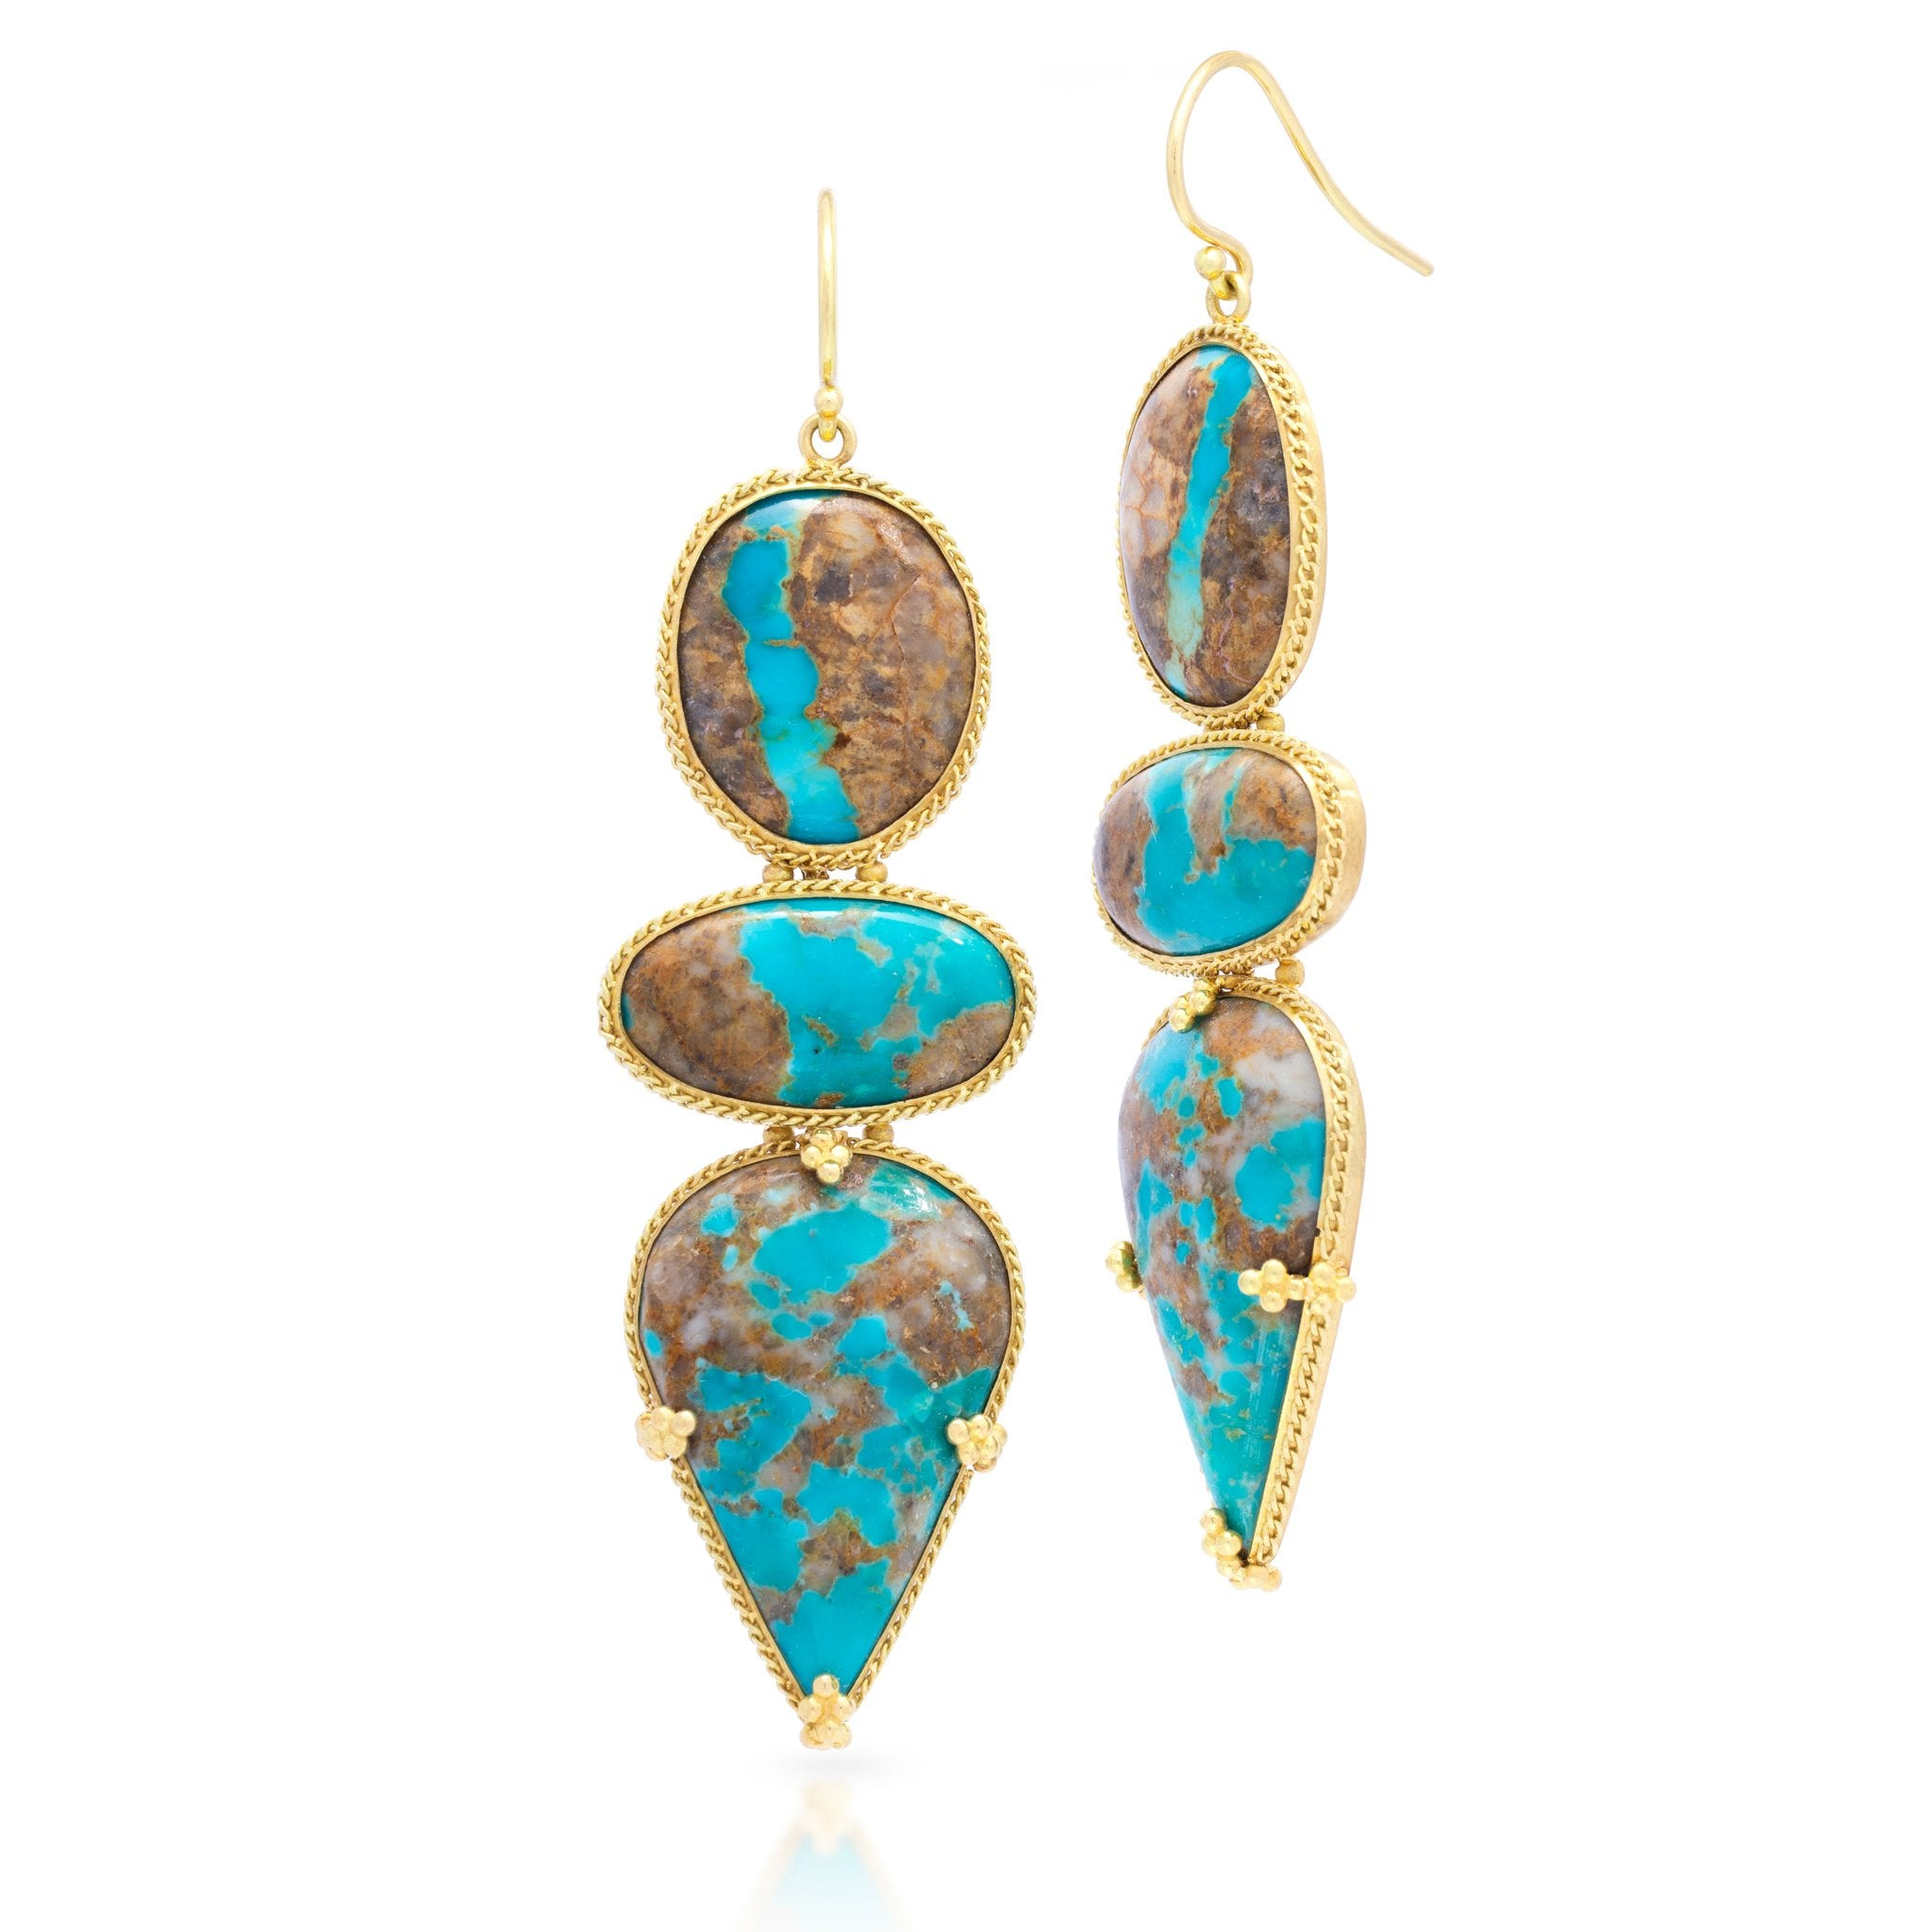 Amali-Turquoise Triple Drop Earrings